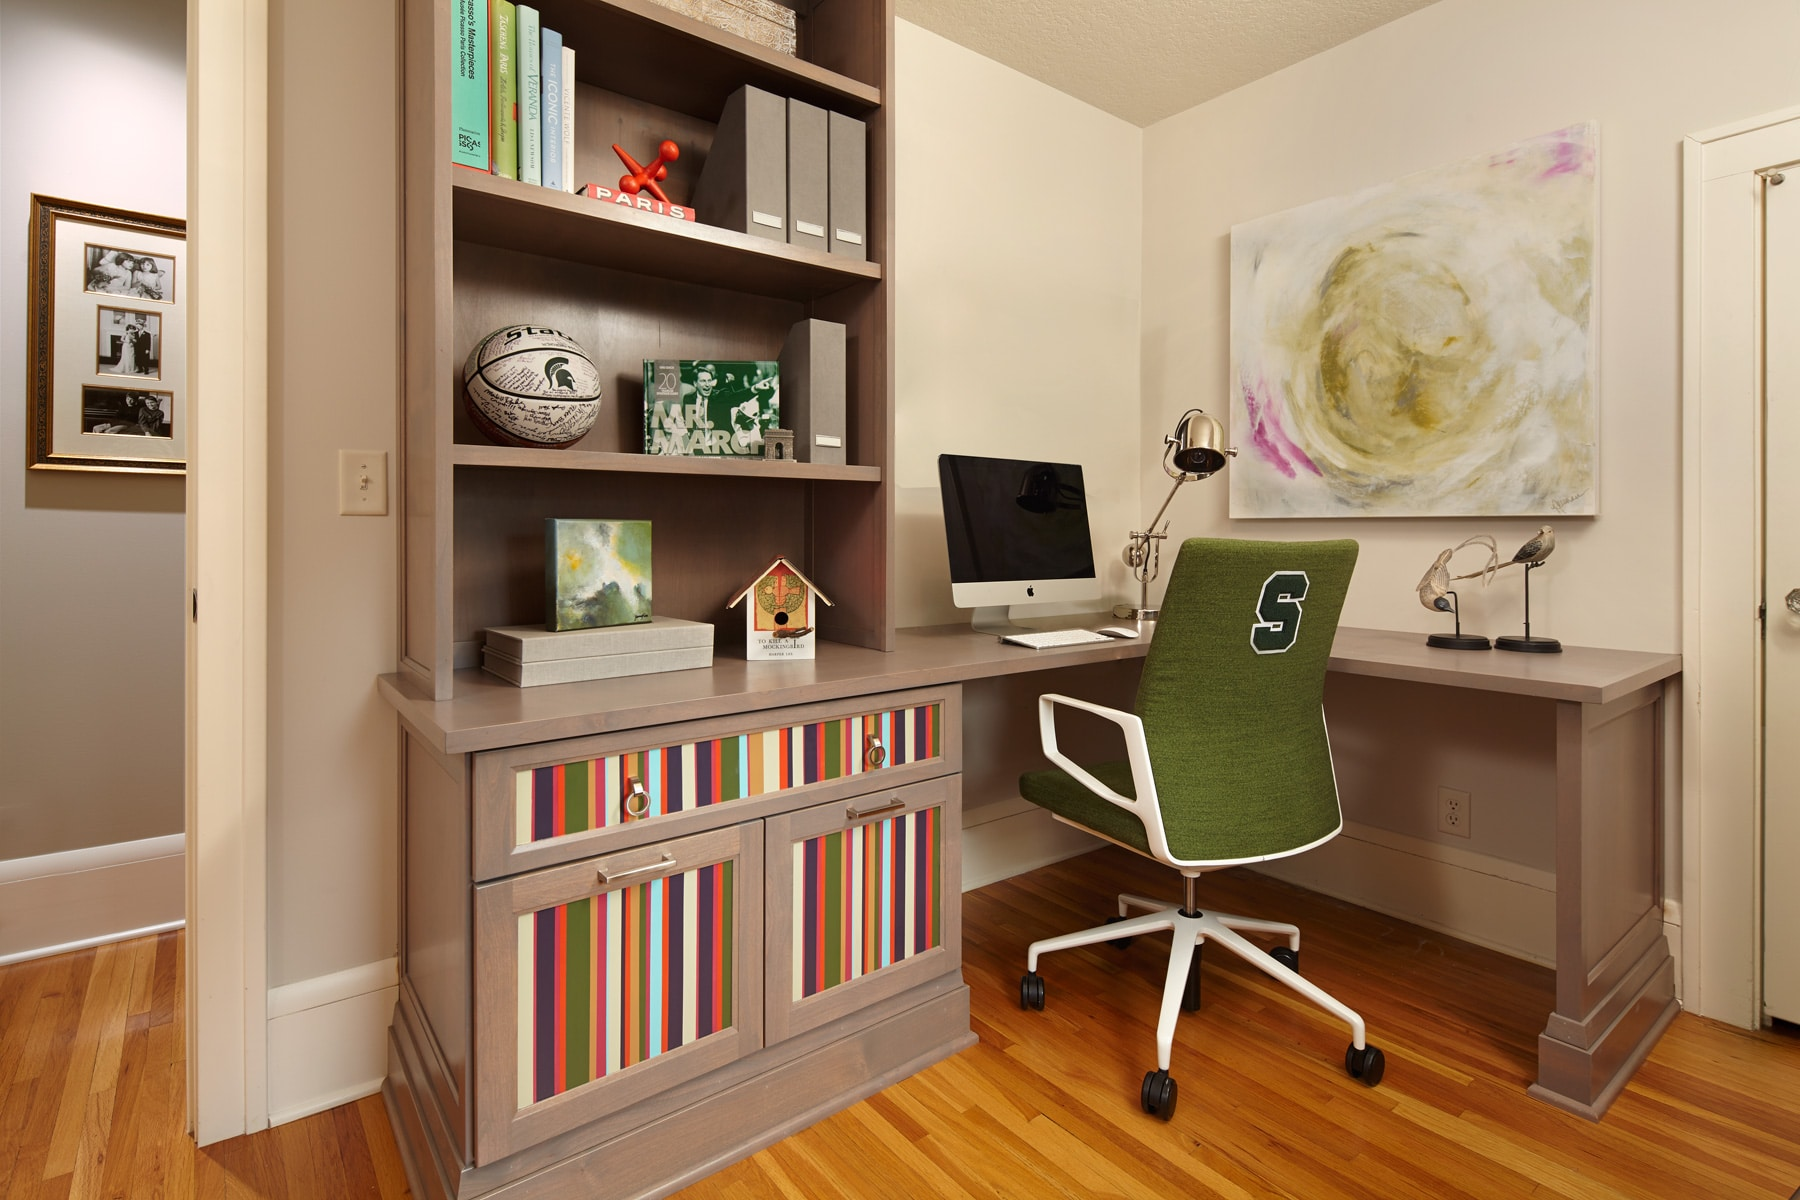 his-office-custom-hand-crafted-bookcase-Minneapolis-Interior-Designer.jpg